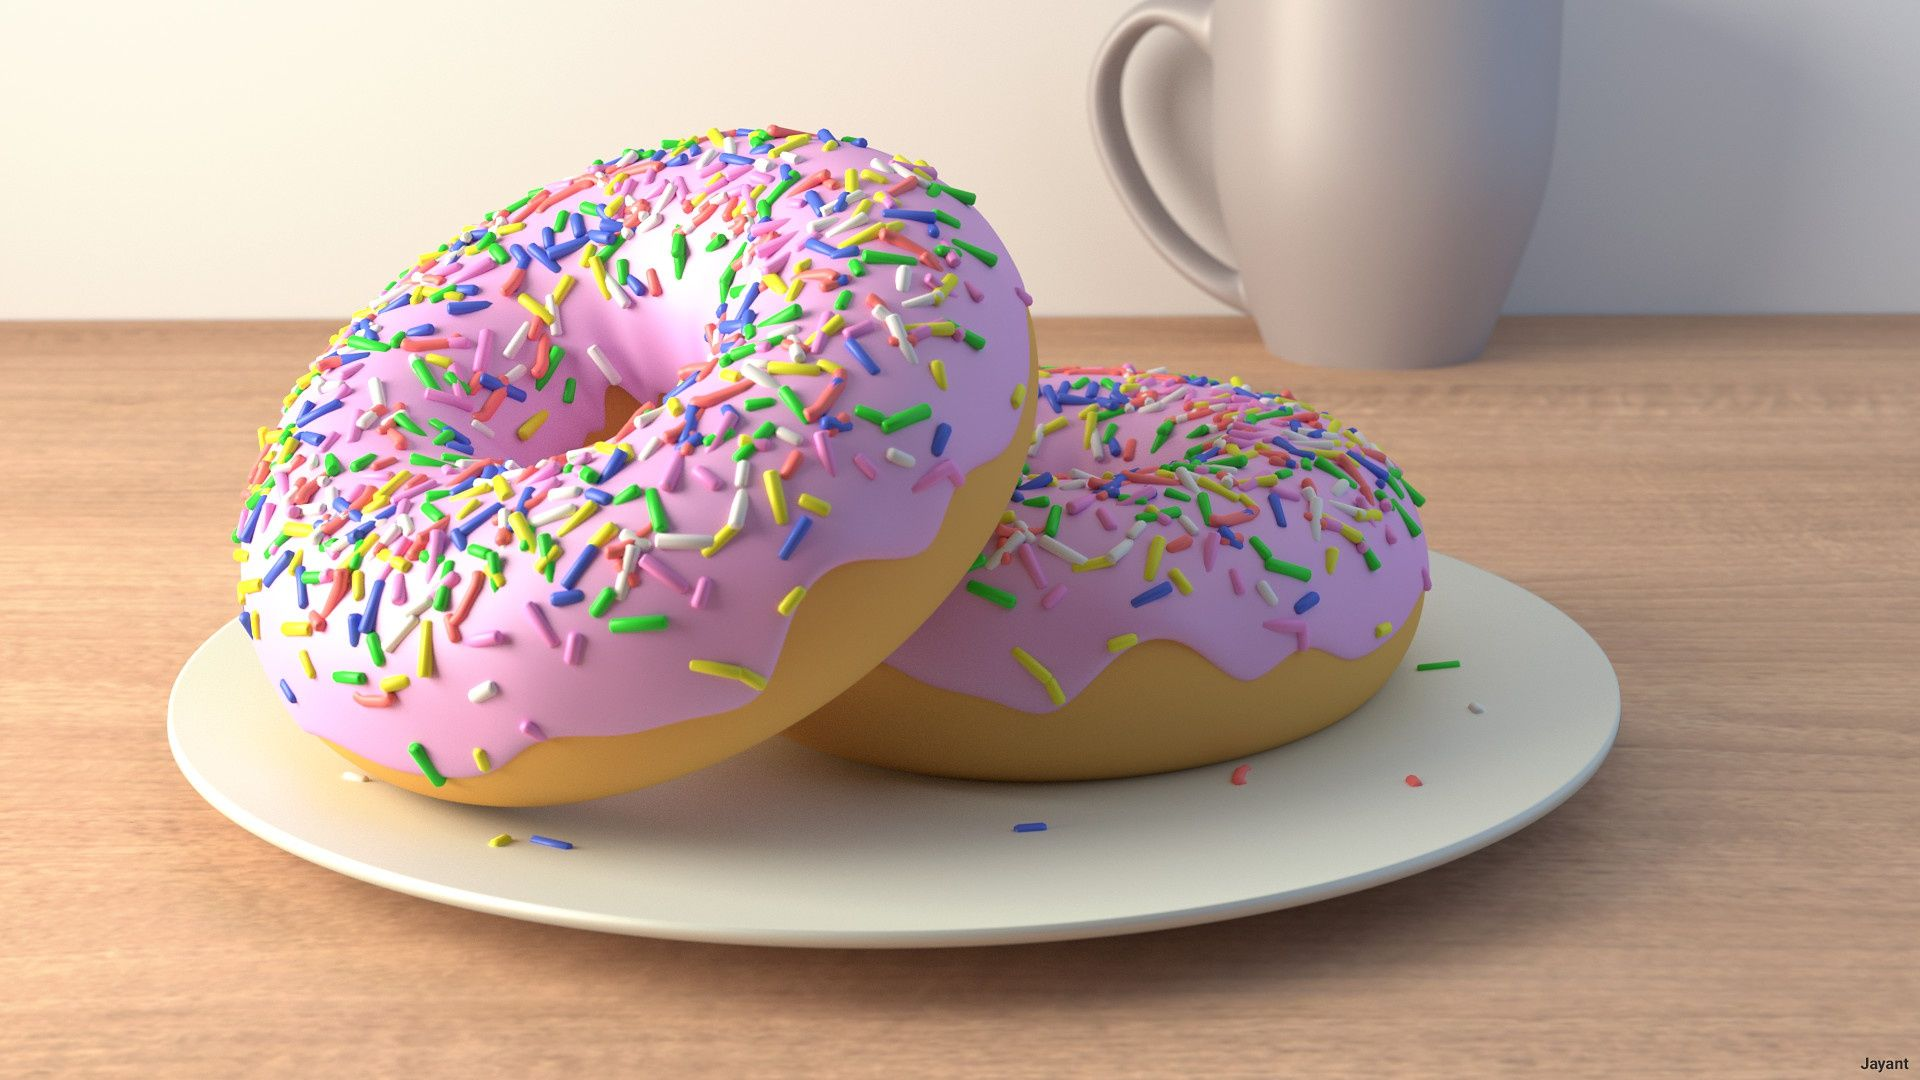 Sprinkles download free wallpapers for pc in hd